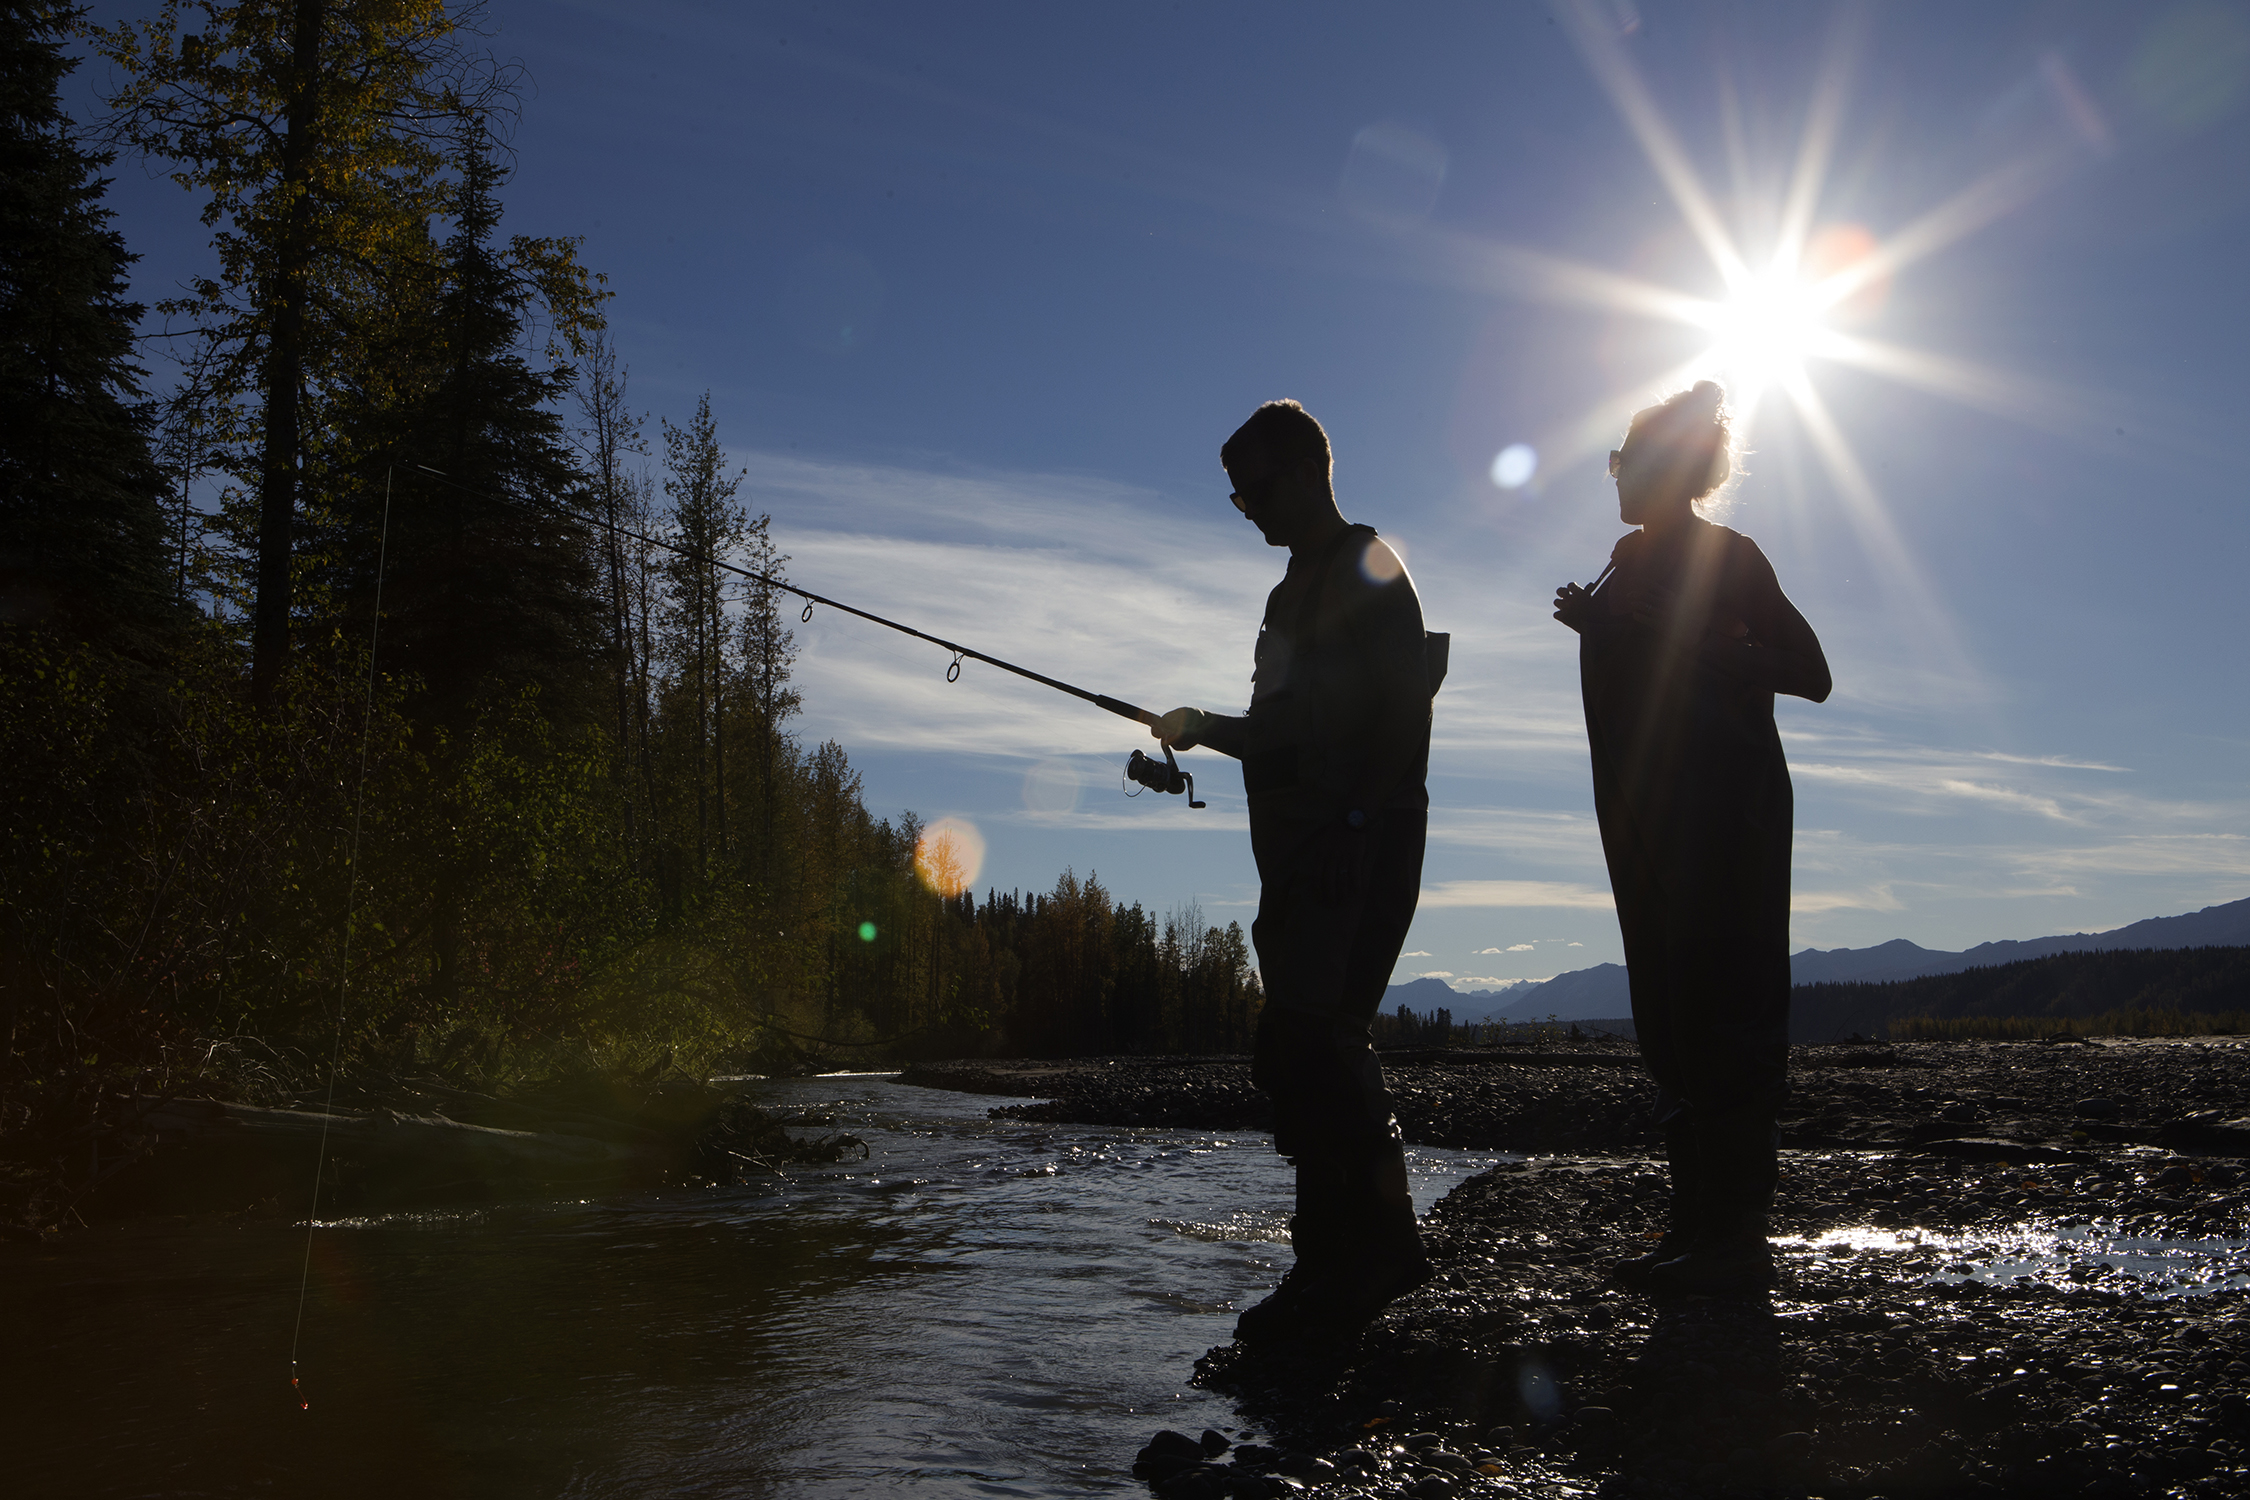 Austin and Whitney Krempin from southern California enjoy an afternoon in autumn fishing while wading through glacial streams outside Talkeetna, Alaska. © Photo by Gail Fisher